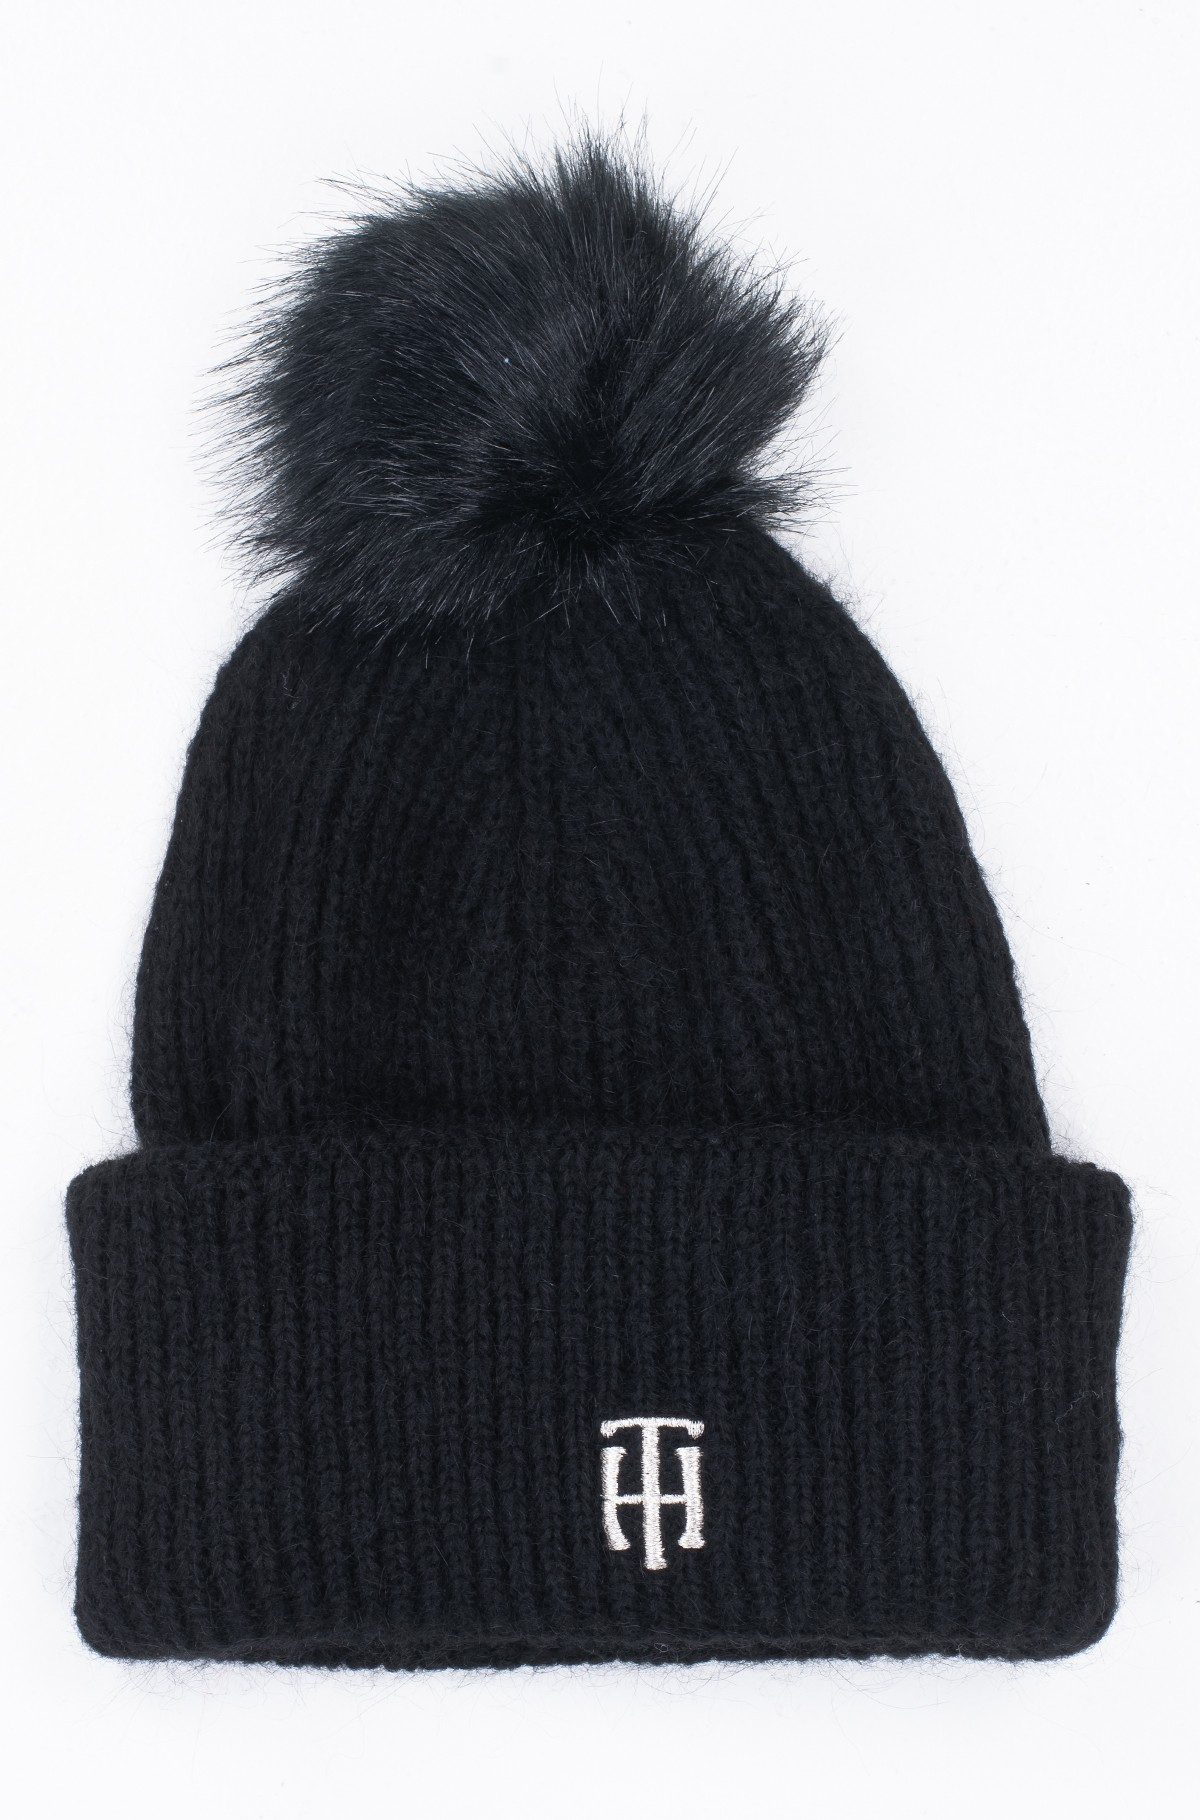 Kepurė TH POMPOM BEANIE-full-1